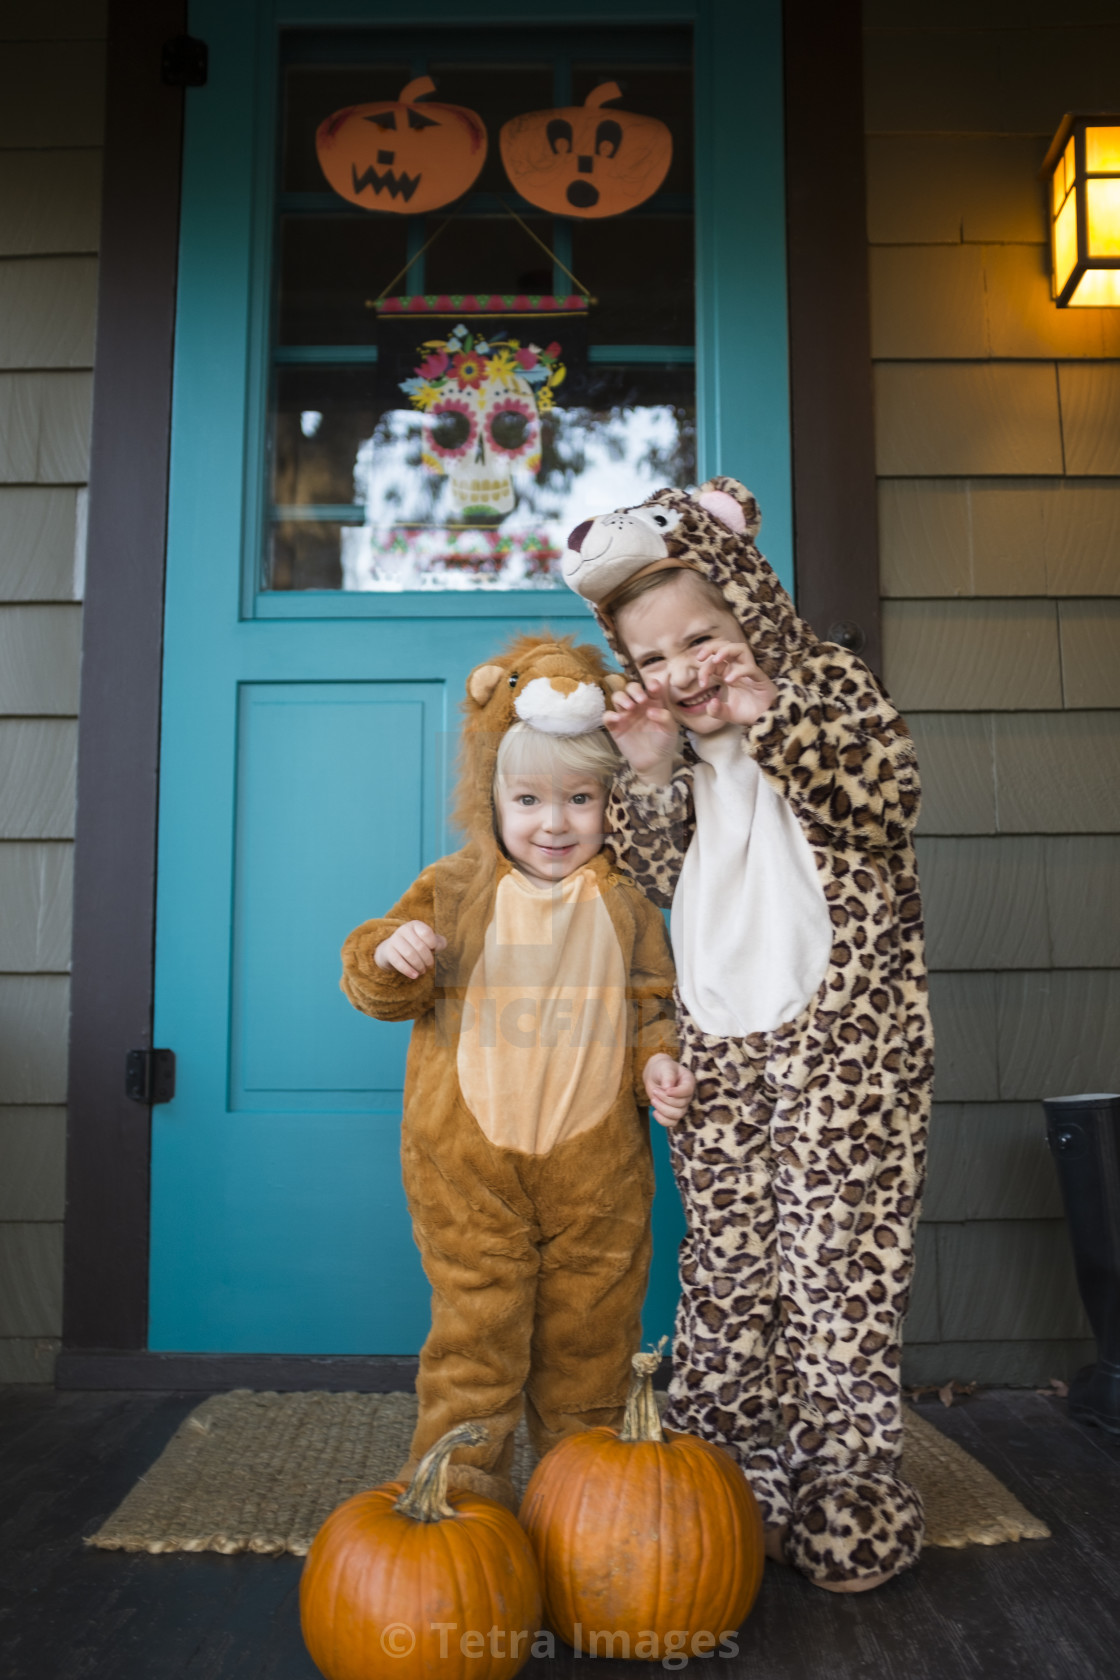 Halloween Costumes For 3 Kids.Two Kids 2 3 4 5 Wearing Halloween Costumes License